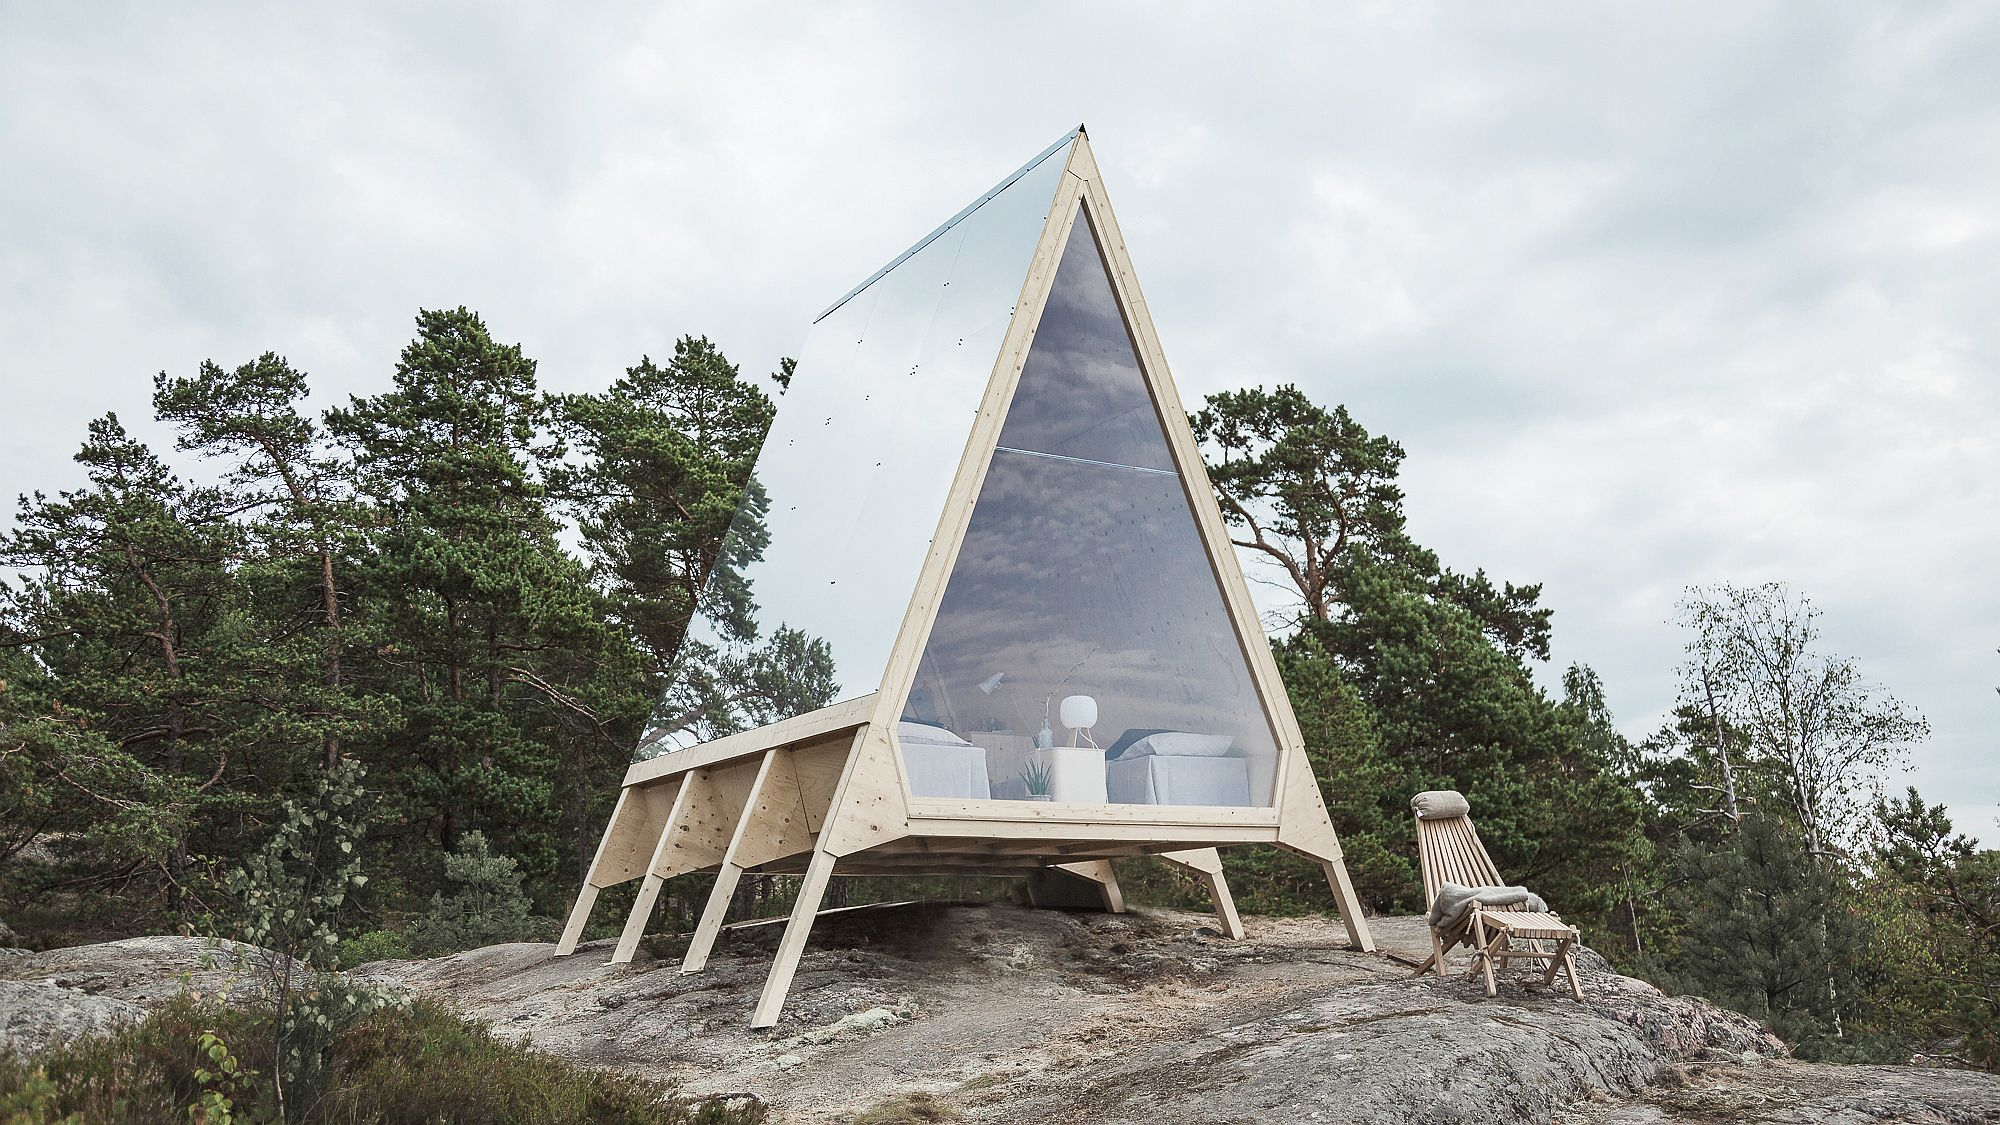 Sustainable and Zero-energy cabin that can function off-grid